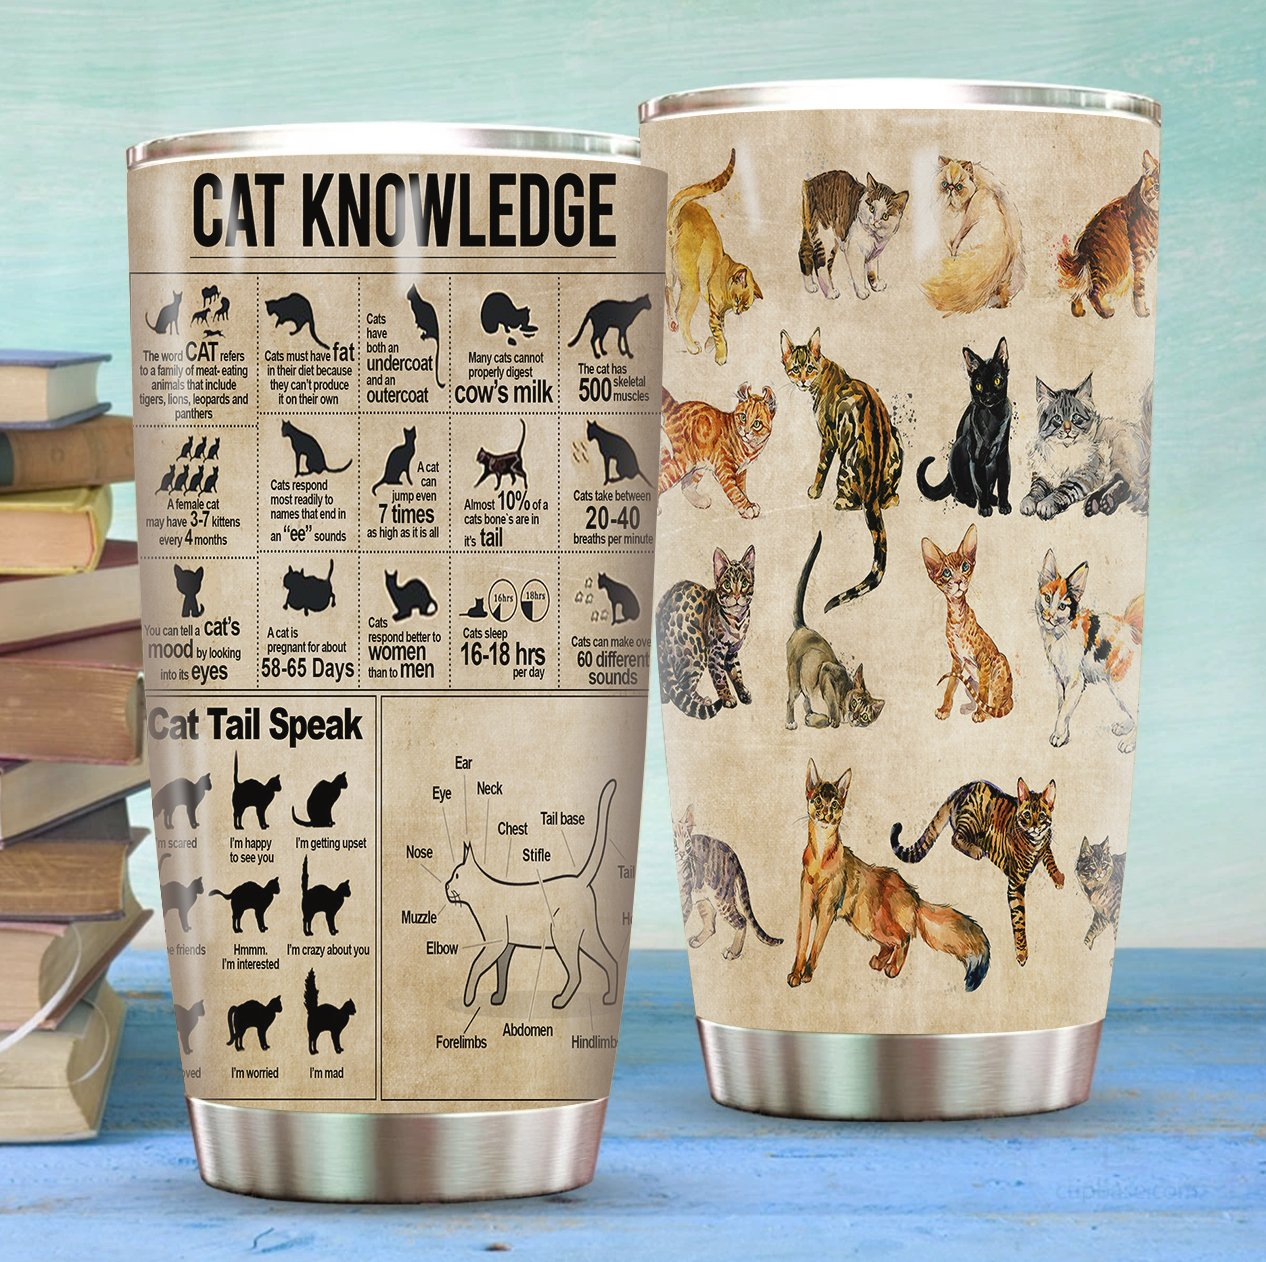 Cat Knowledge Stainless Steel Tumbler